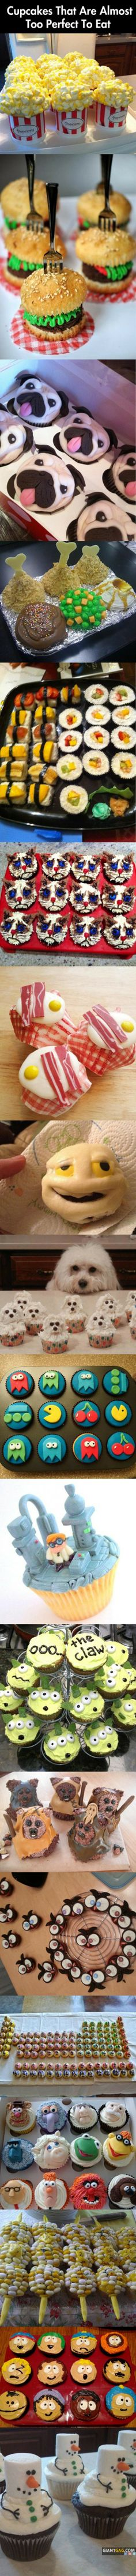 Funny pictures of the day - 101 images - Cupcakes That Are Almost To Perect Too Eat